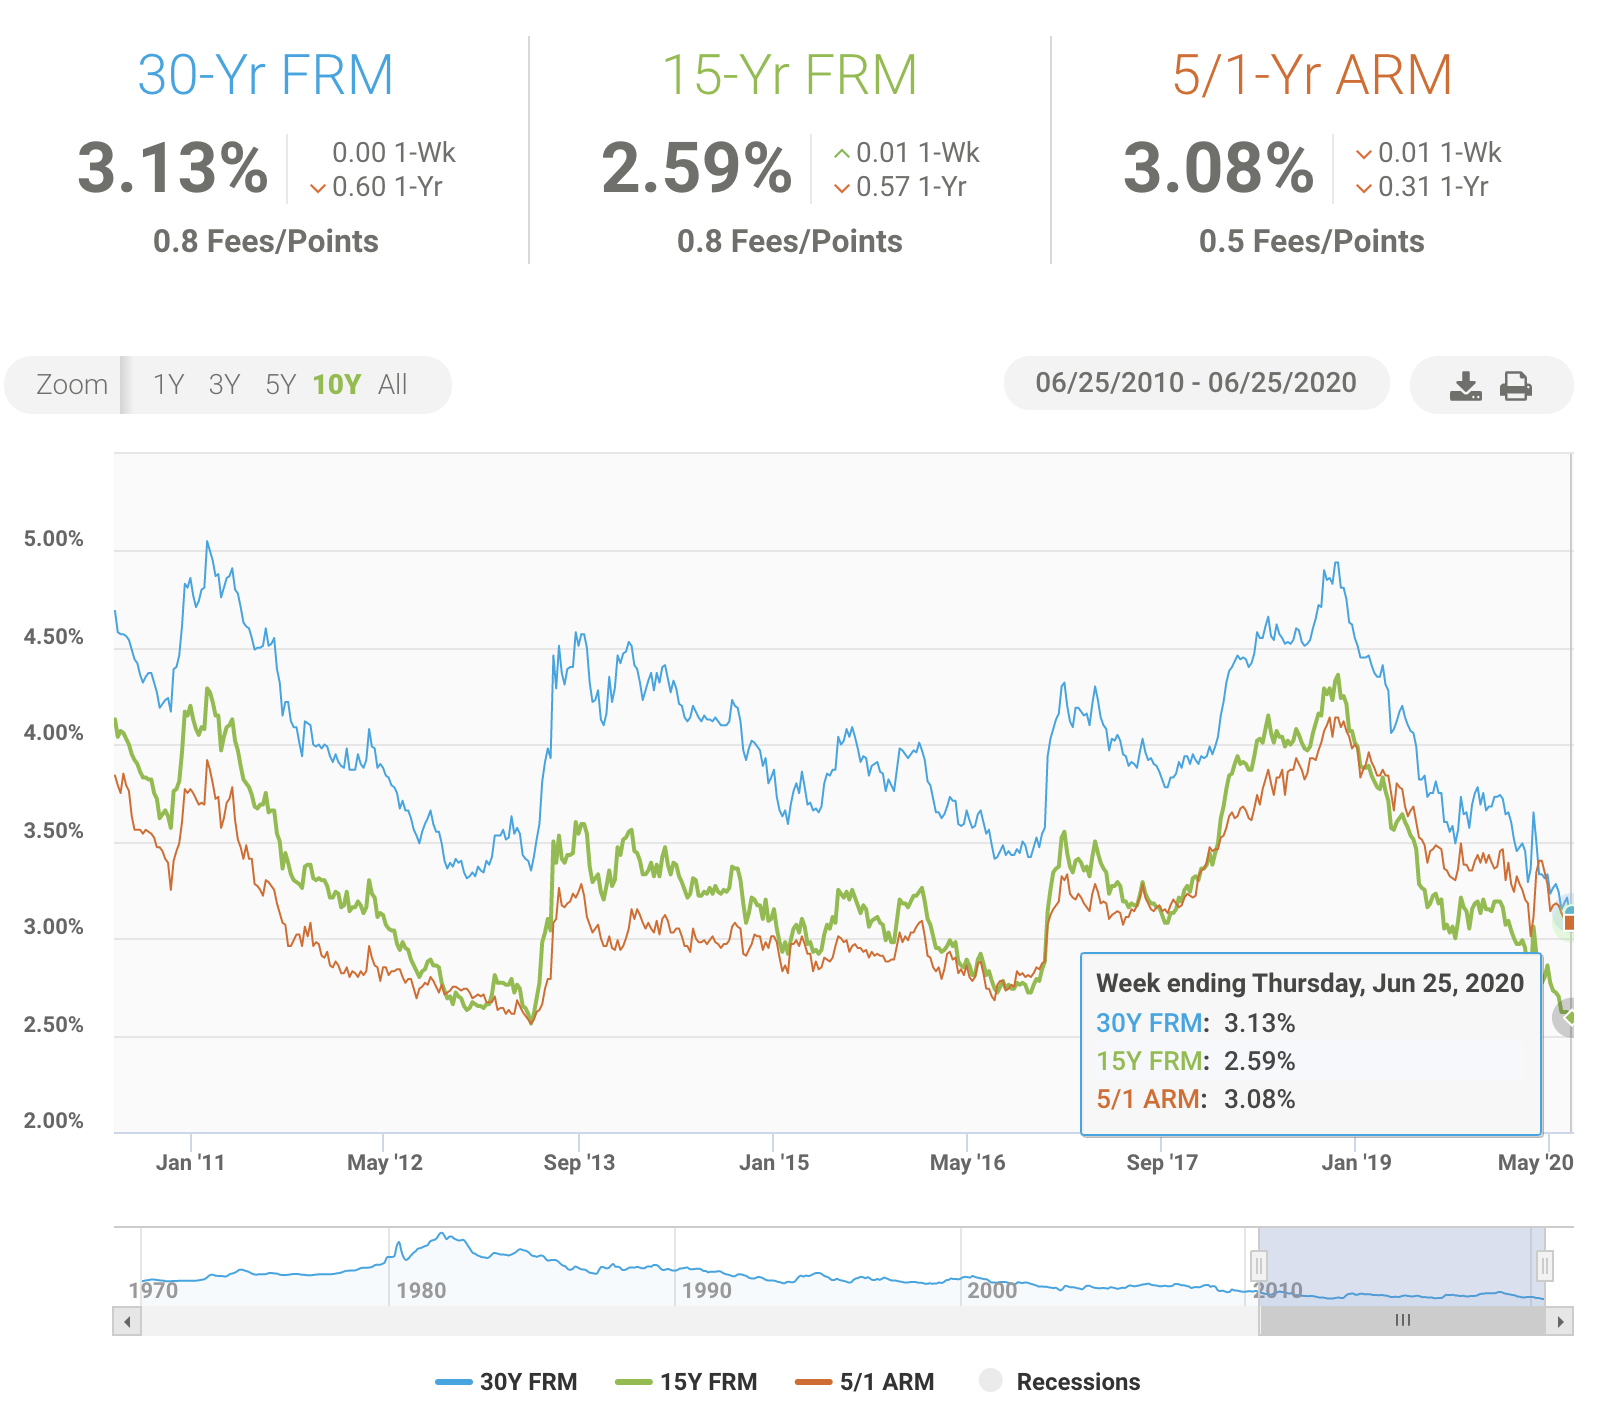 Mortgage rate during COVID-19 pandemic is at an all-time low